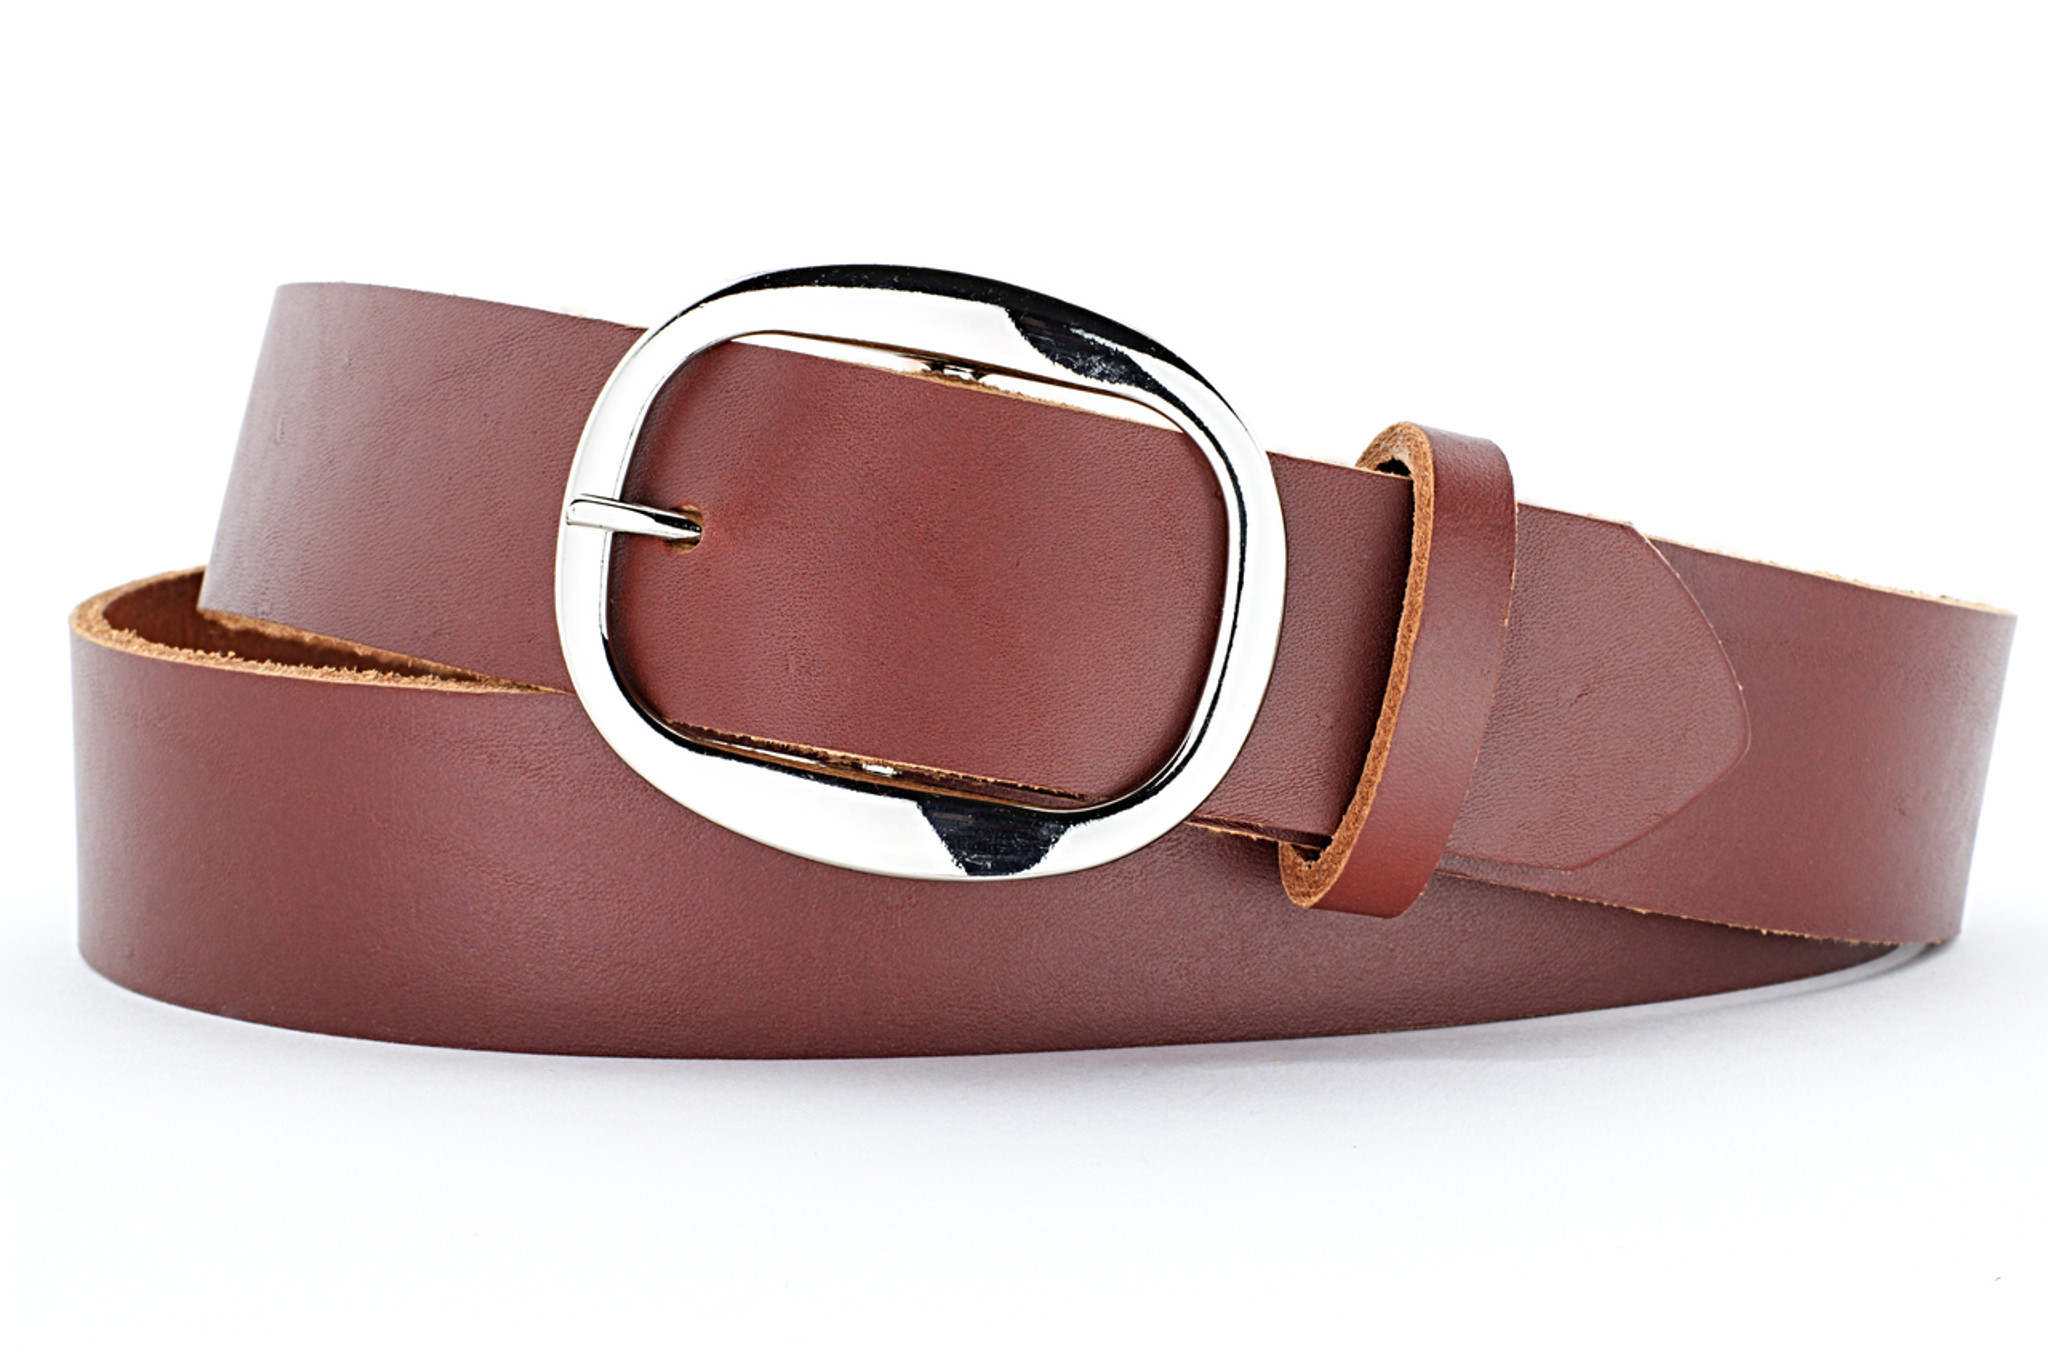 Classic Tan Brown Leather Belt